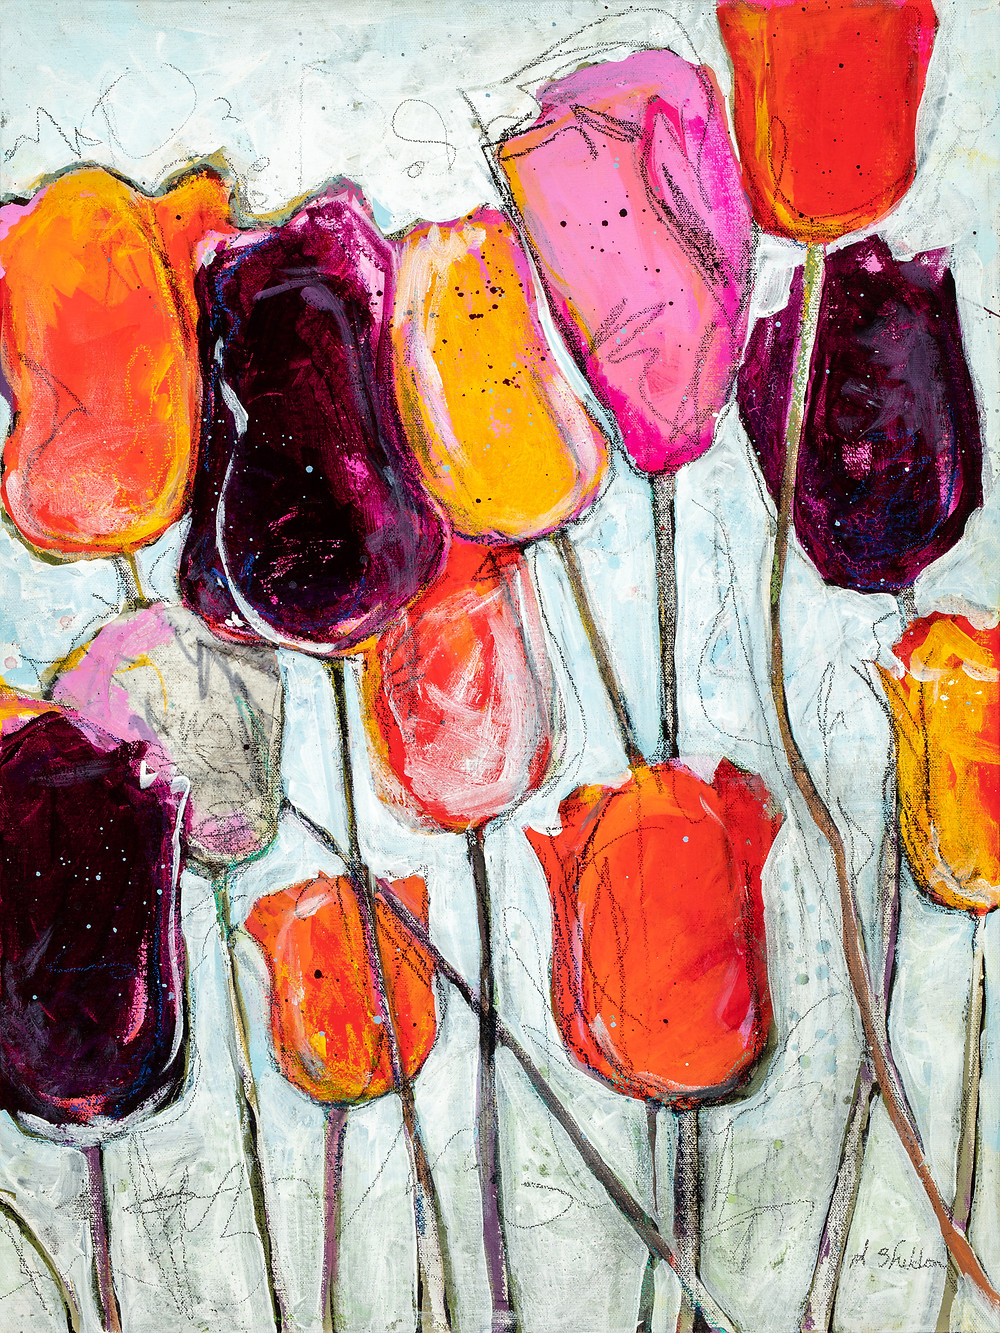 Tulips - Vertical canvas artwork by Deb Sheldon